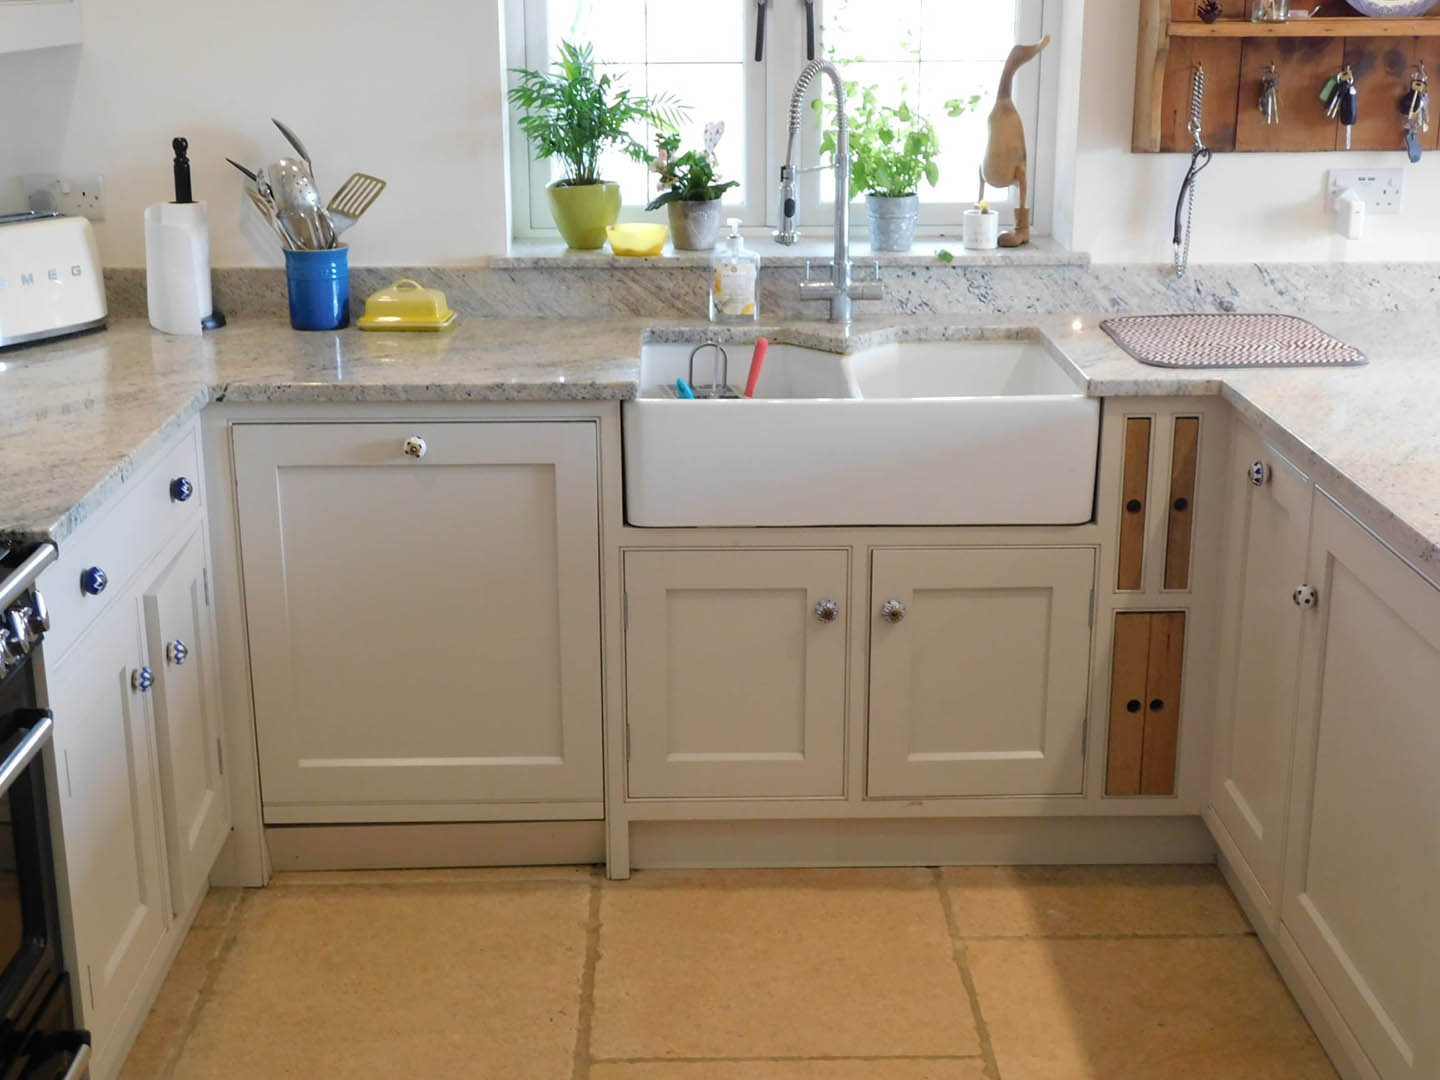 A view of a deep kitchen sink fitted into some marble worktops.